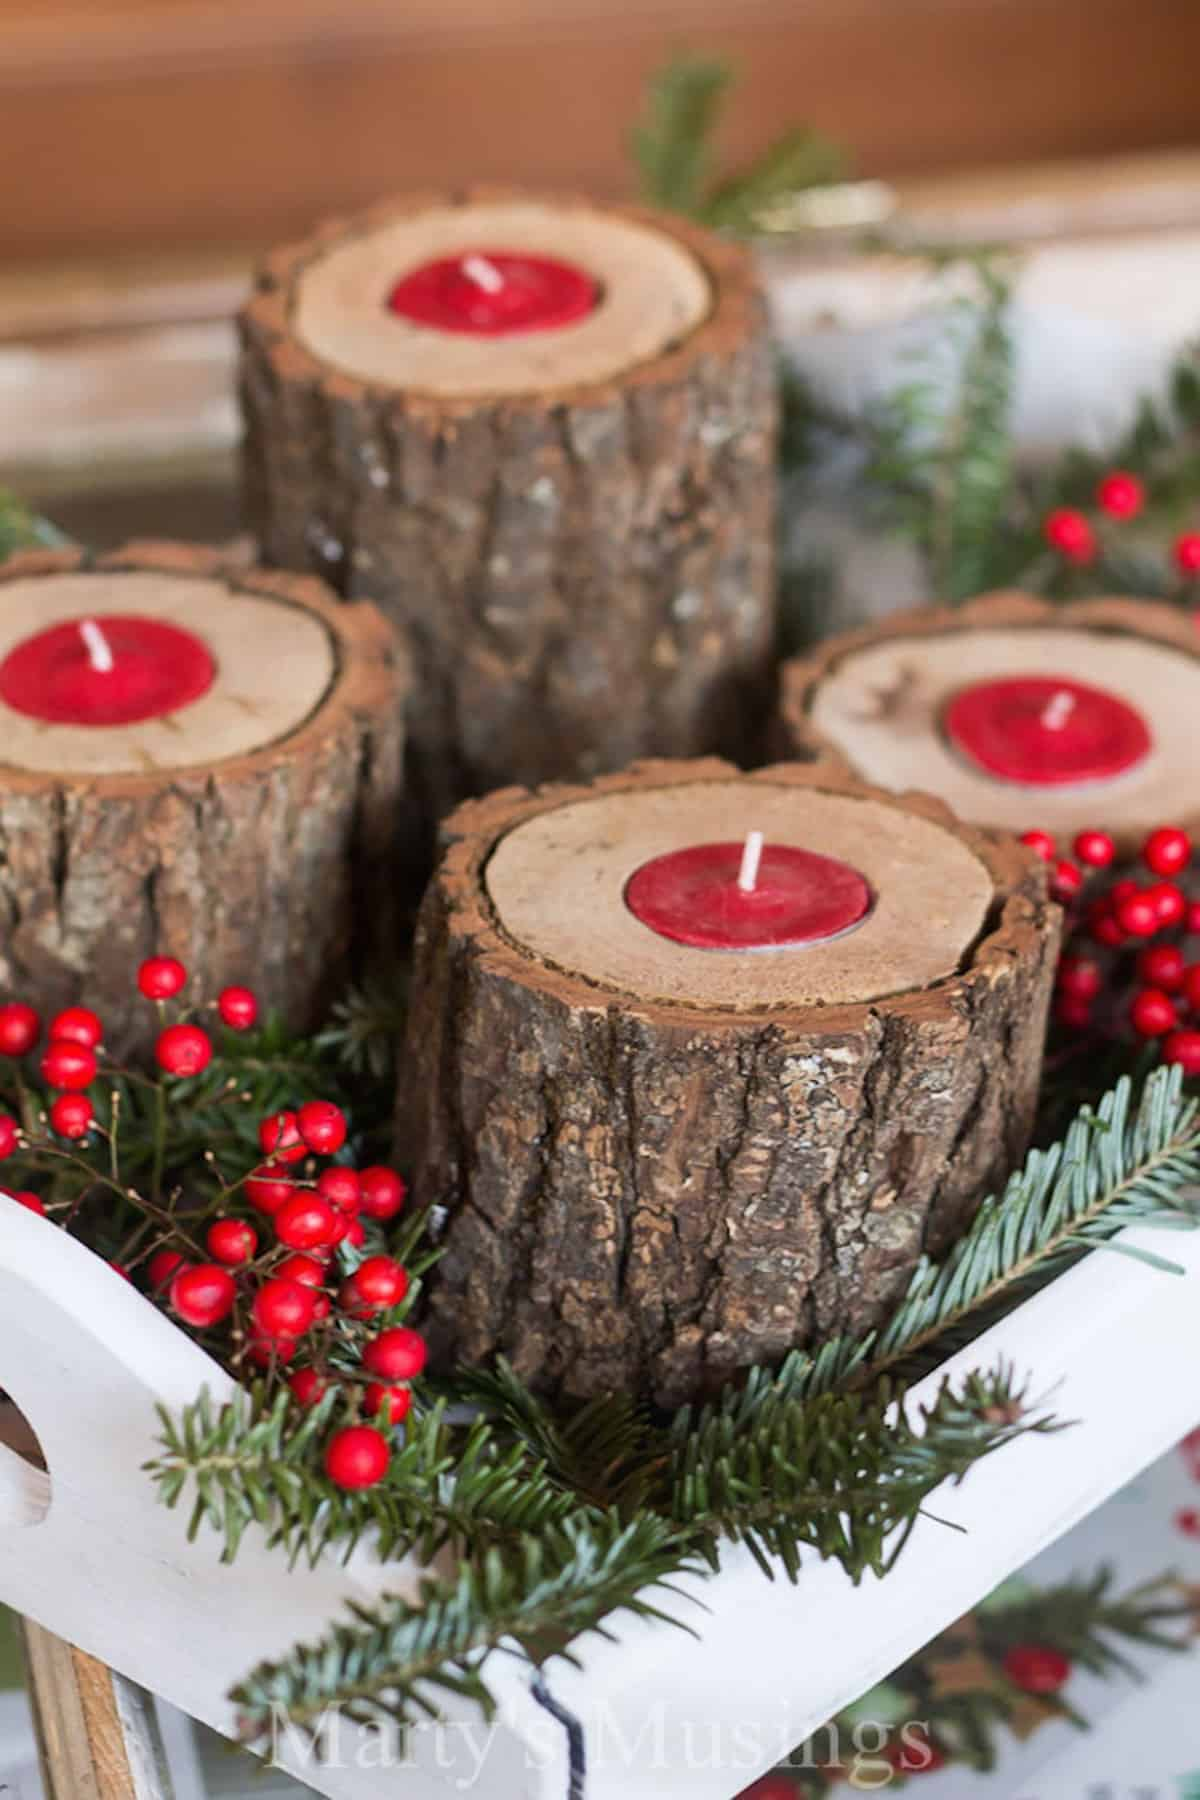 The Rustic Wood Candle Holder